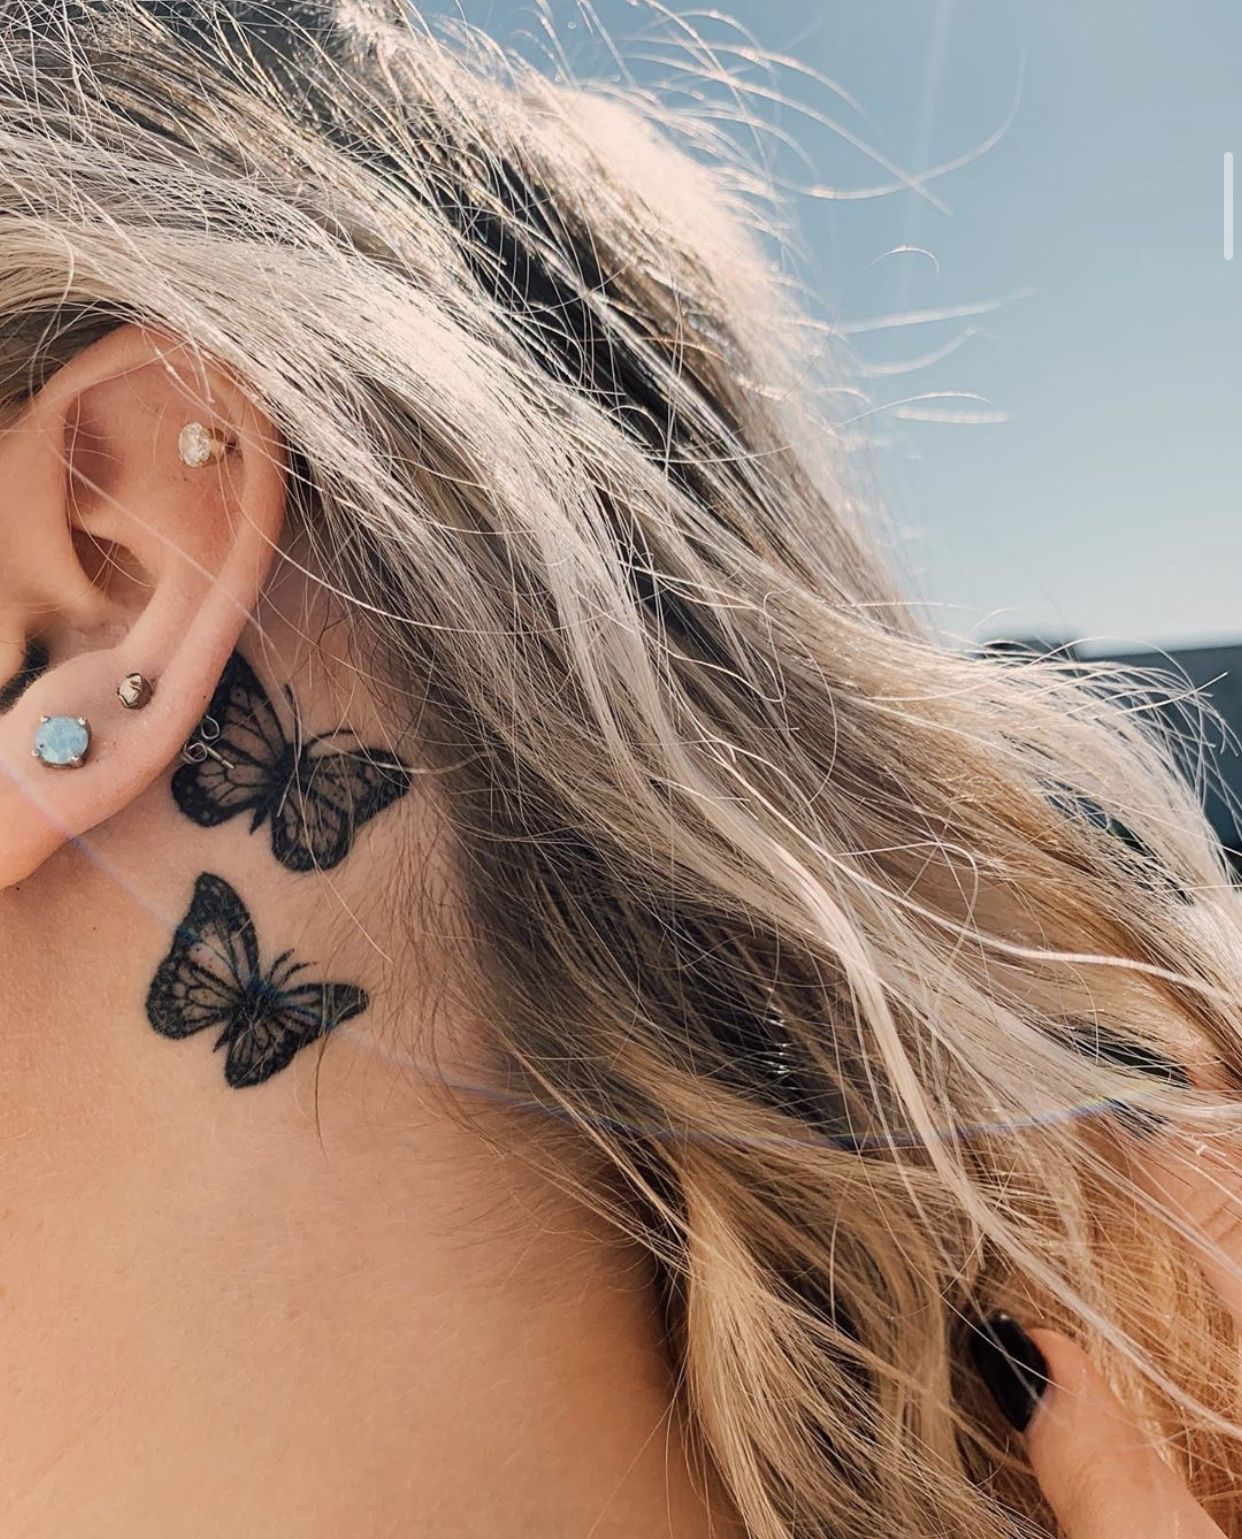 butterfly tattoo (With images) Behind ear tattoos